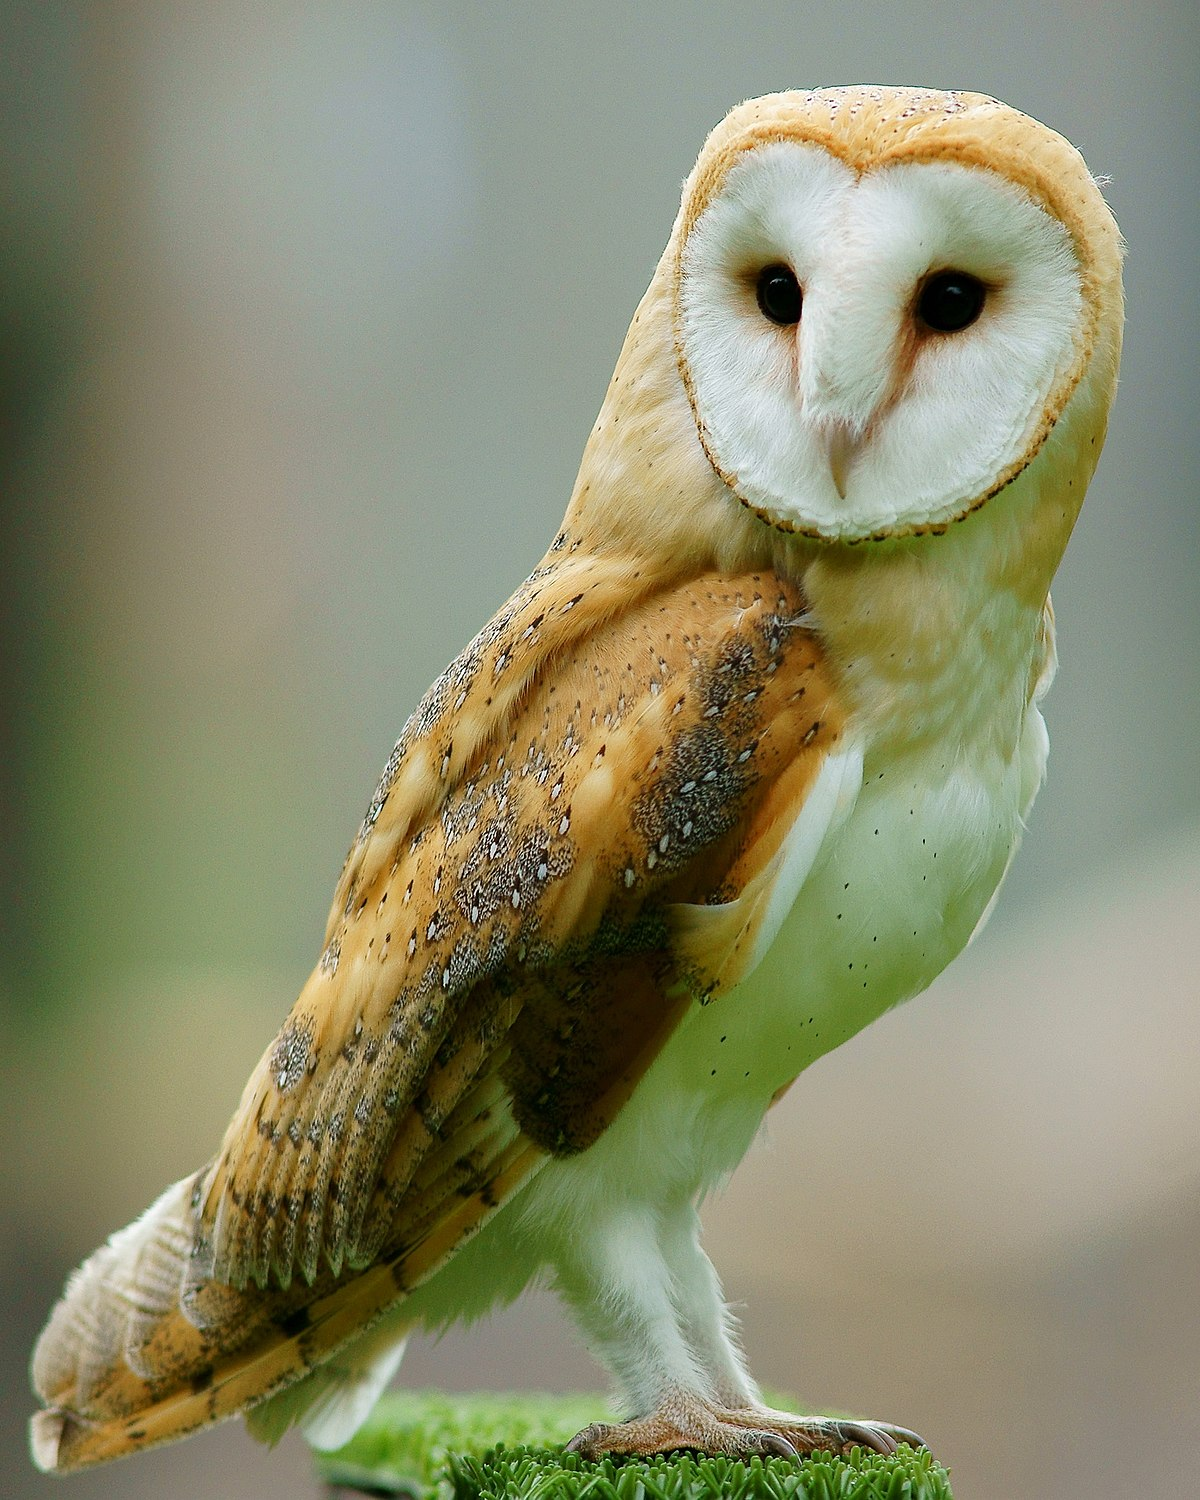 Barn owl - Wikipedia